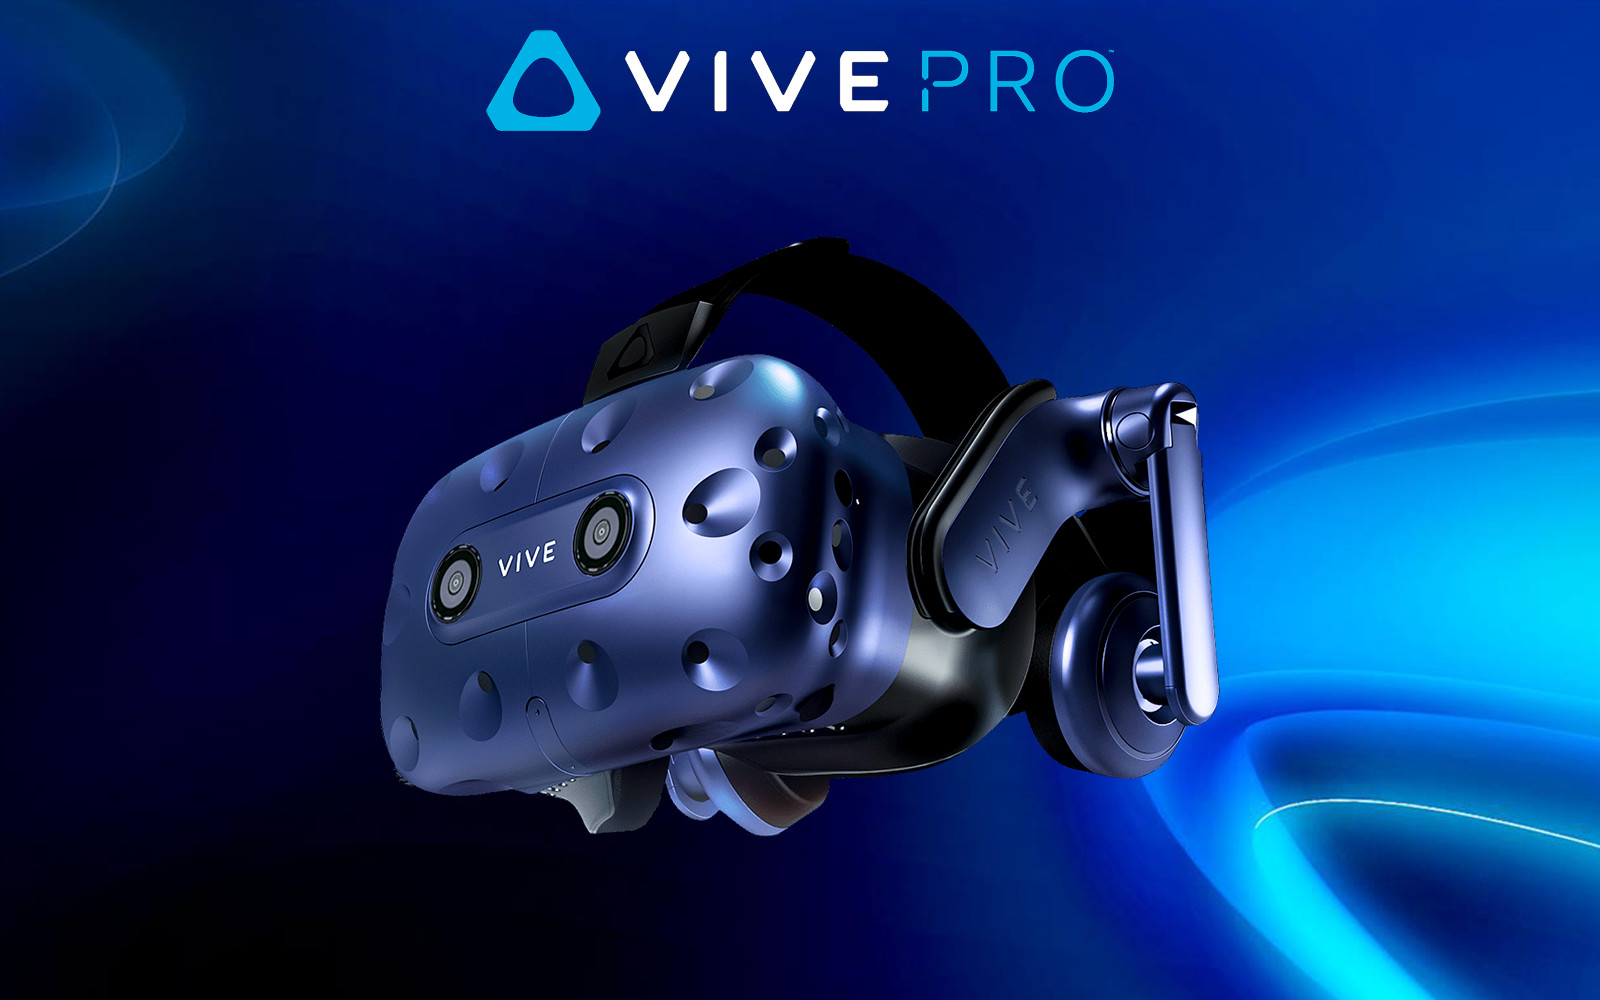 HTC Vive Pro Prices Start At $799 And Will Start Shipping On April 5th